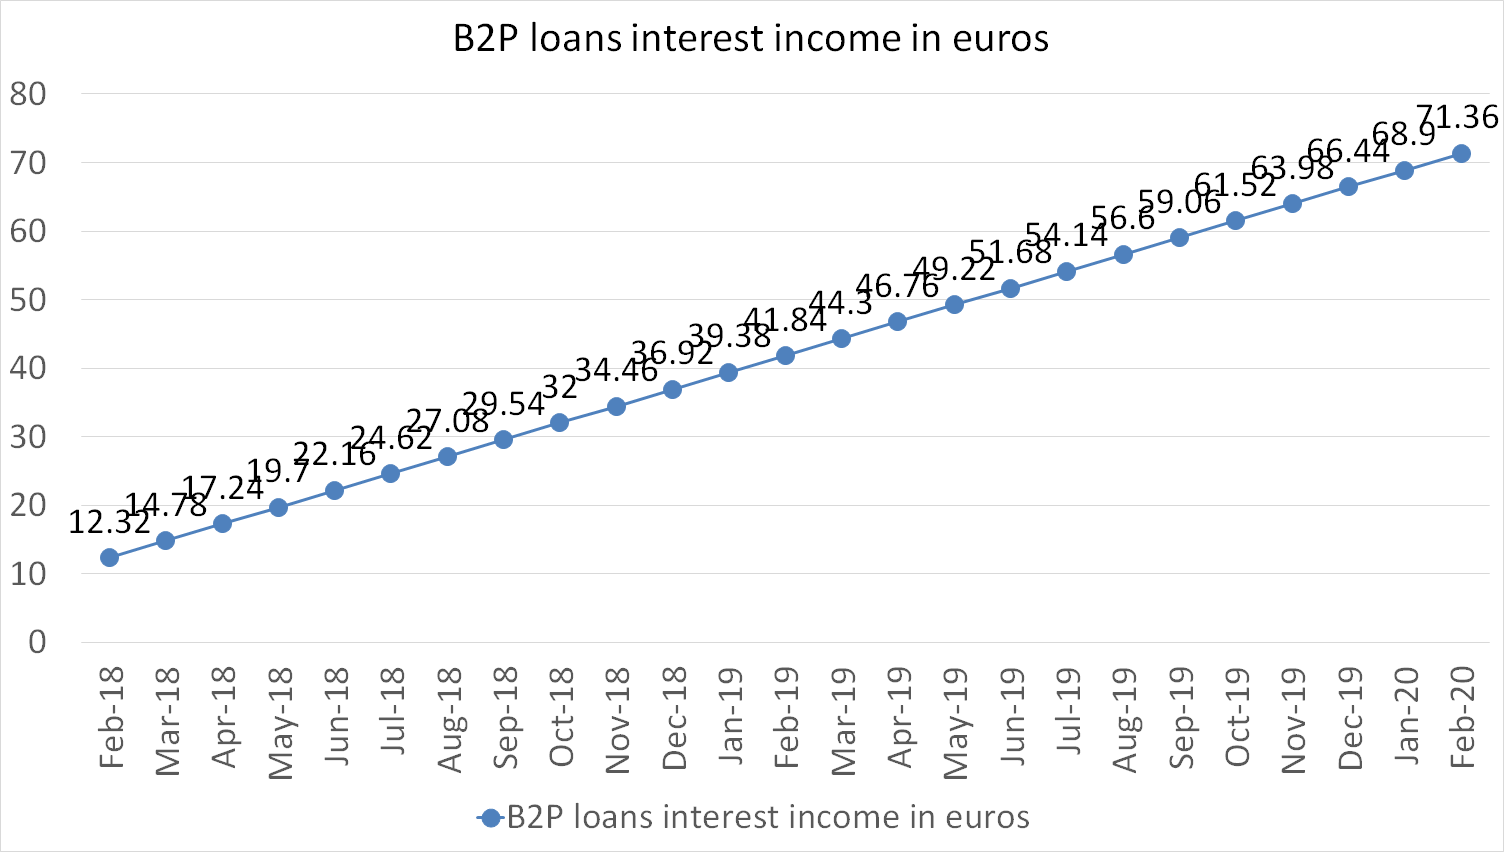 B2P loans interest income in euros, february 2020